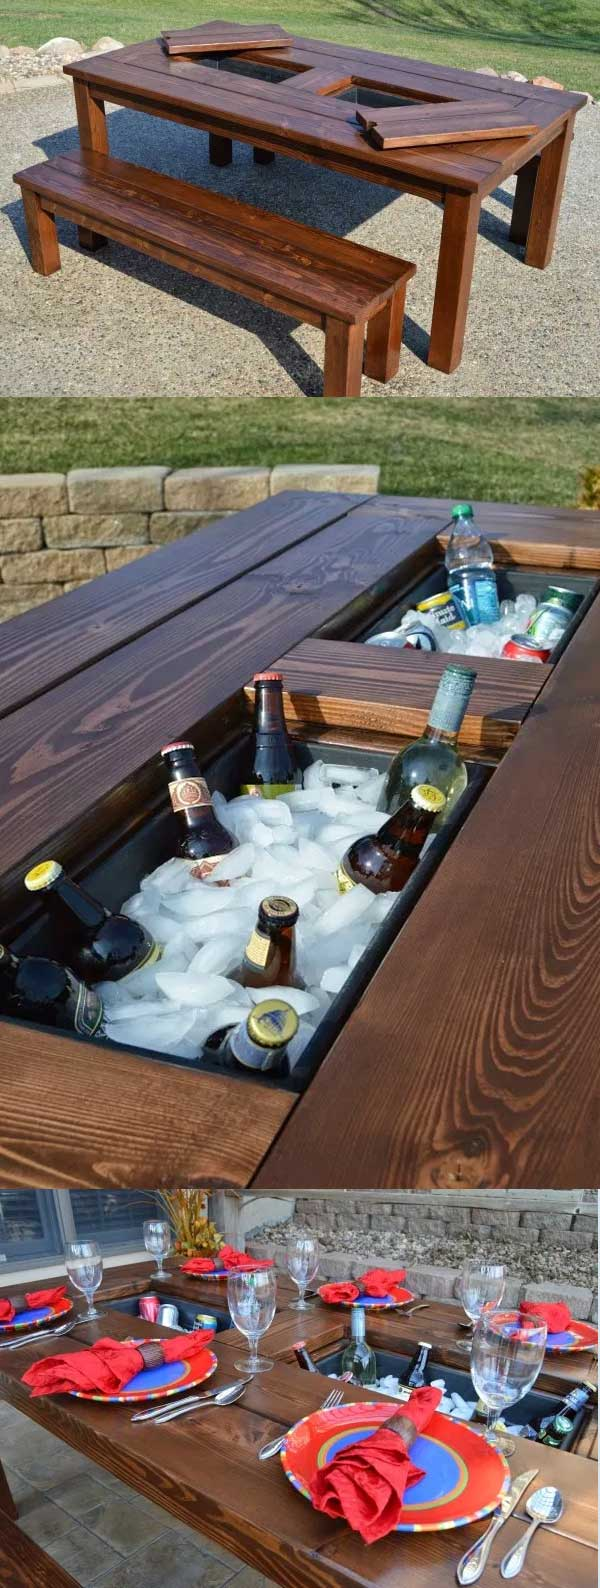 DIY Outdoor Table with Built-in Ice Chest